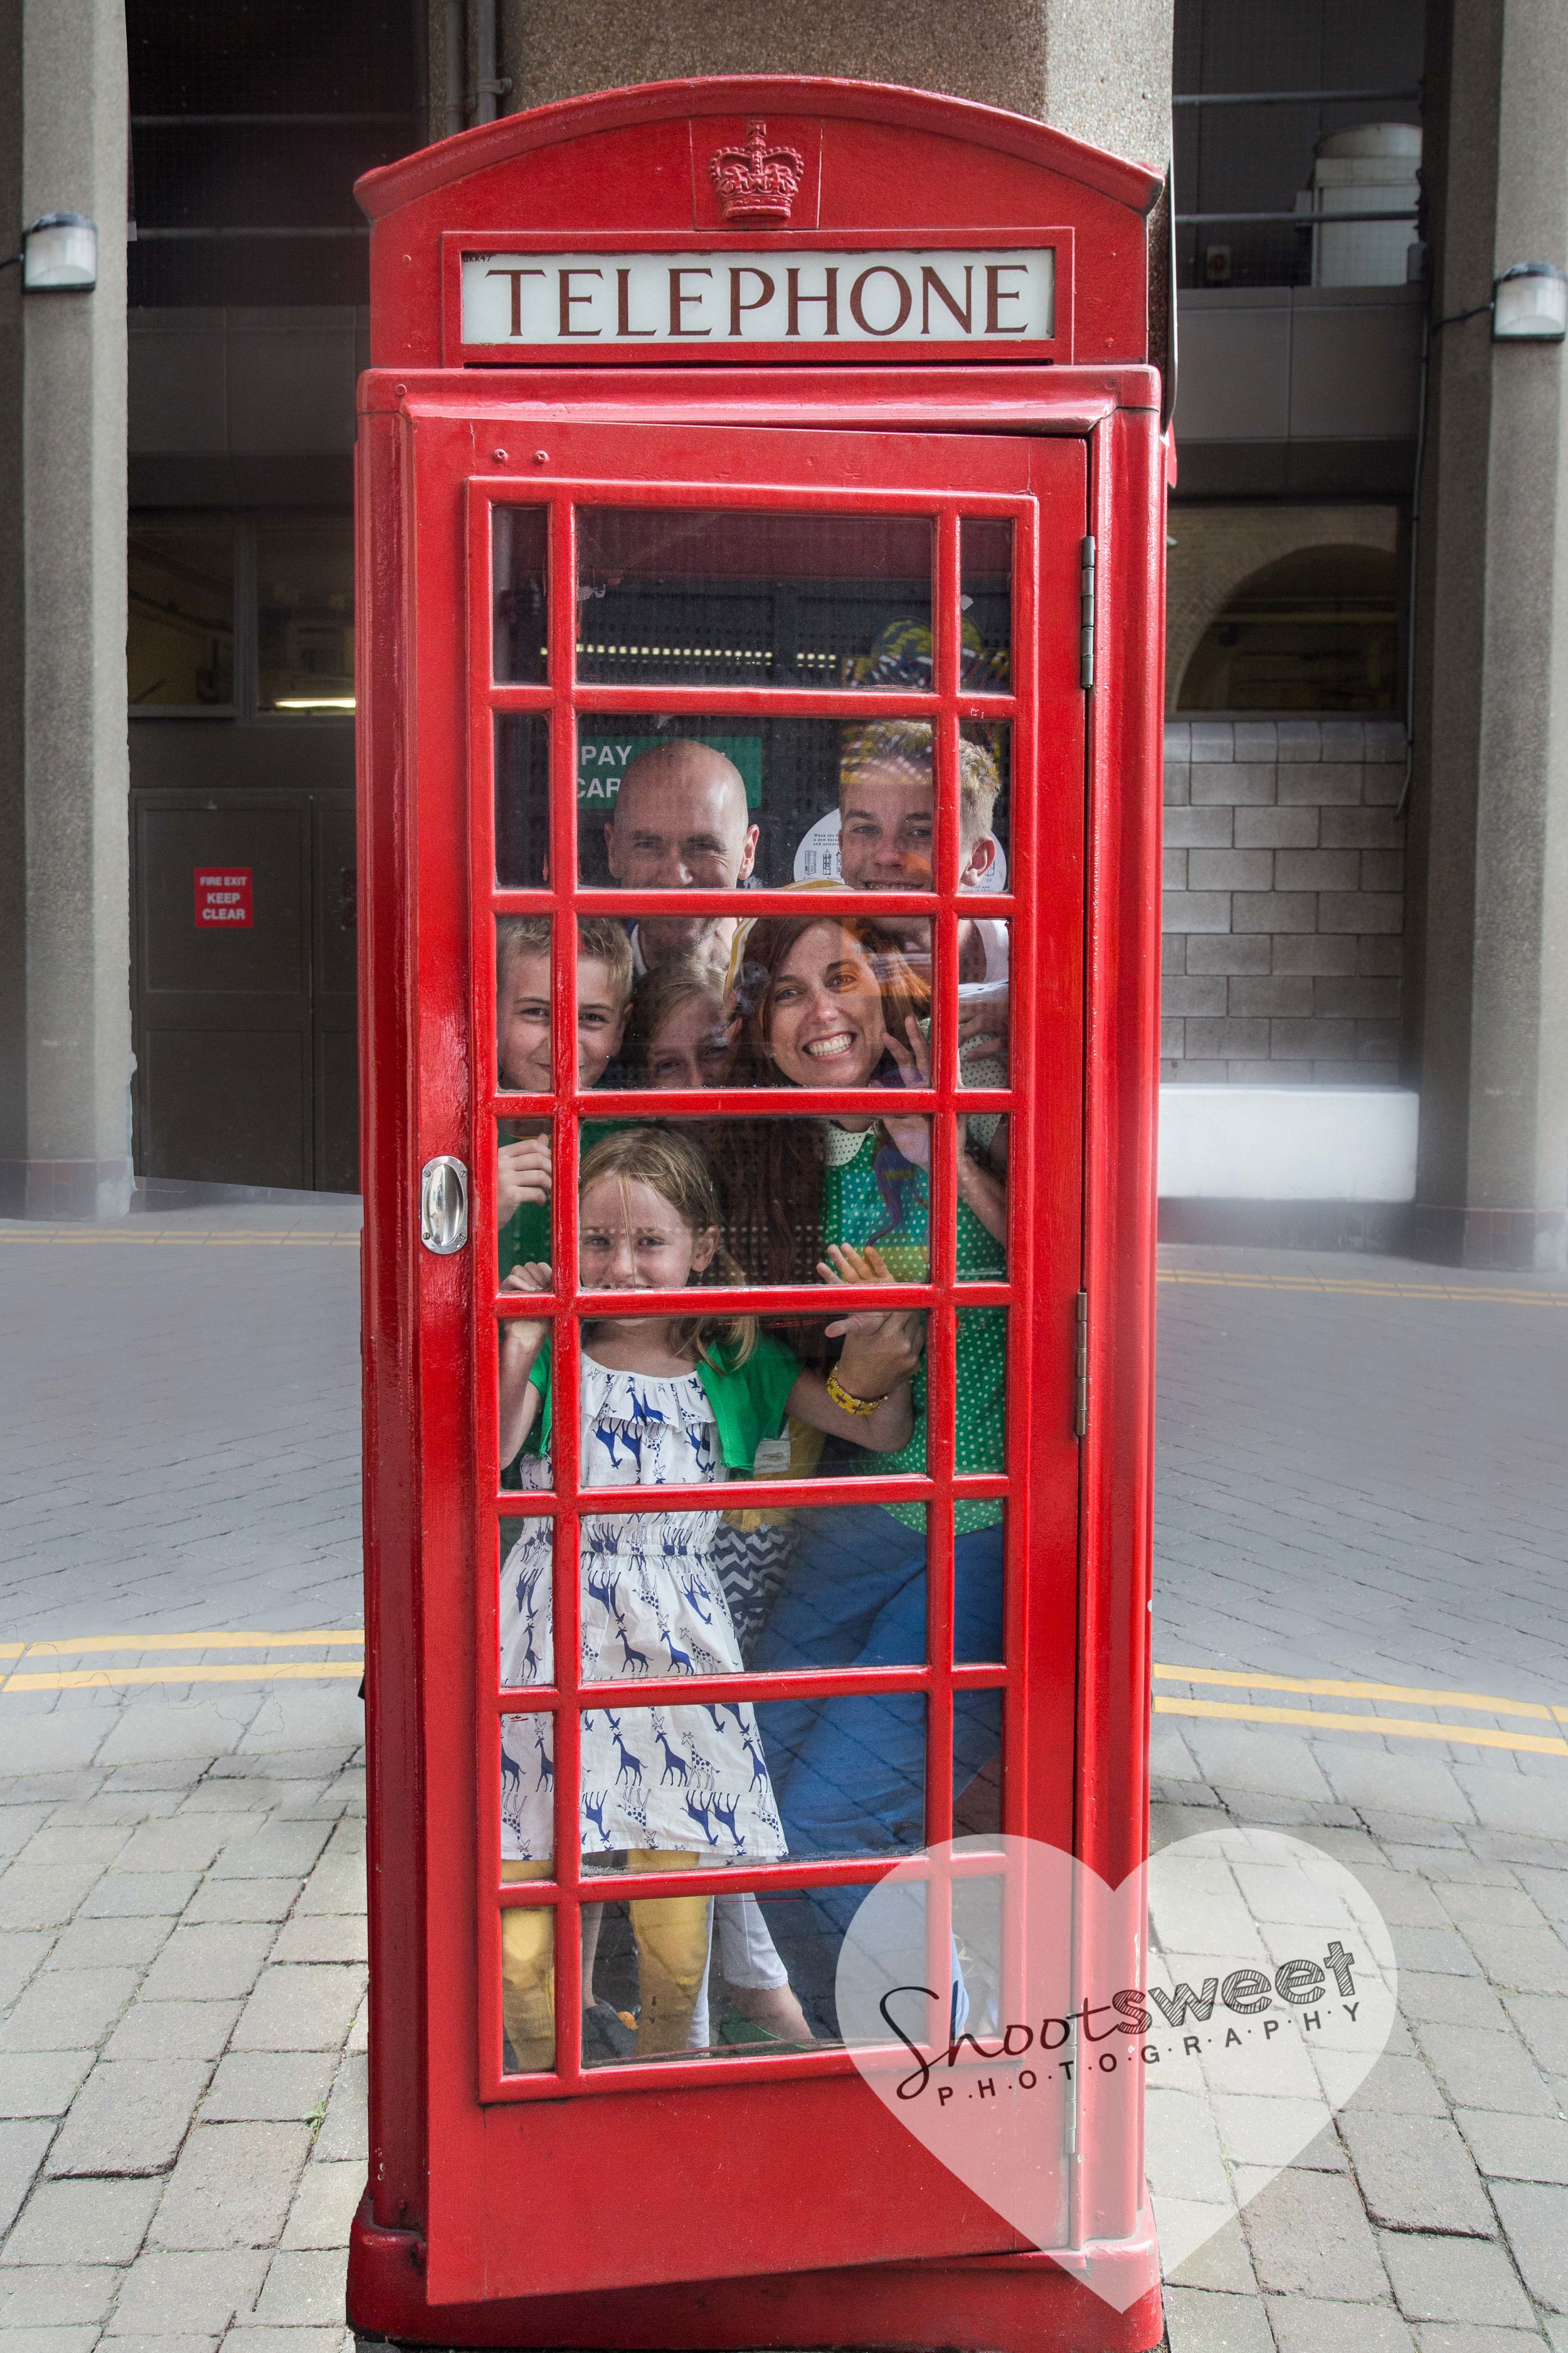 all six Dukes in a telephone box - fun!